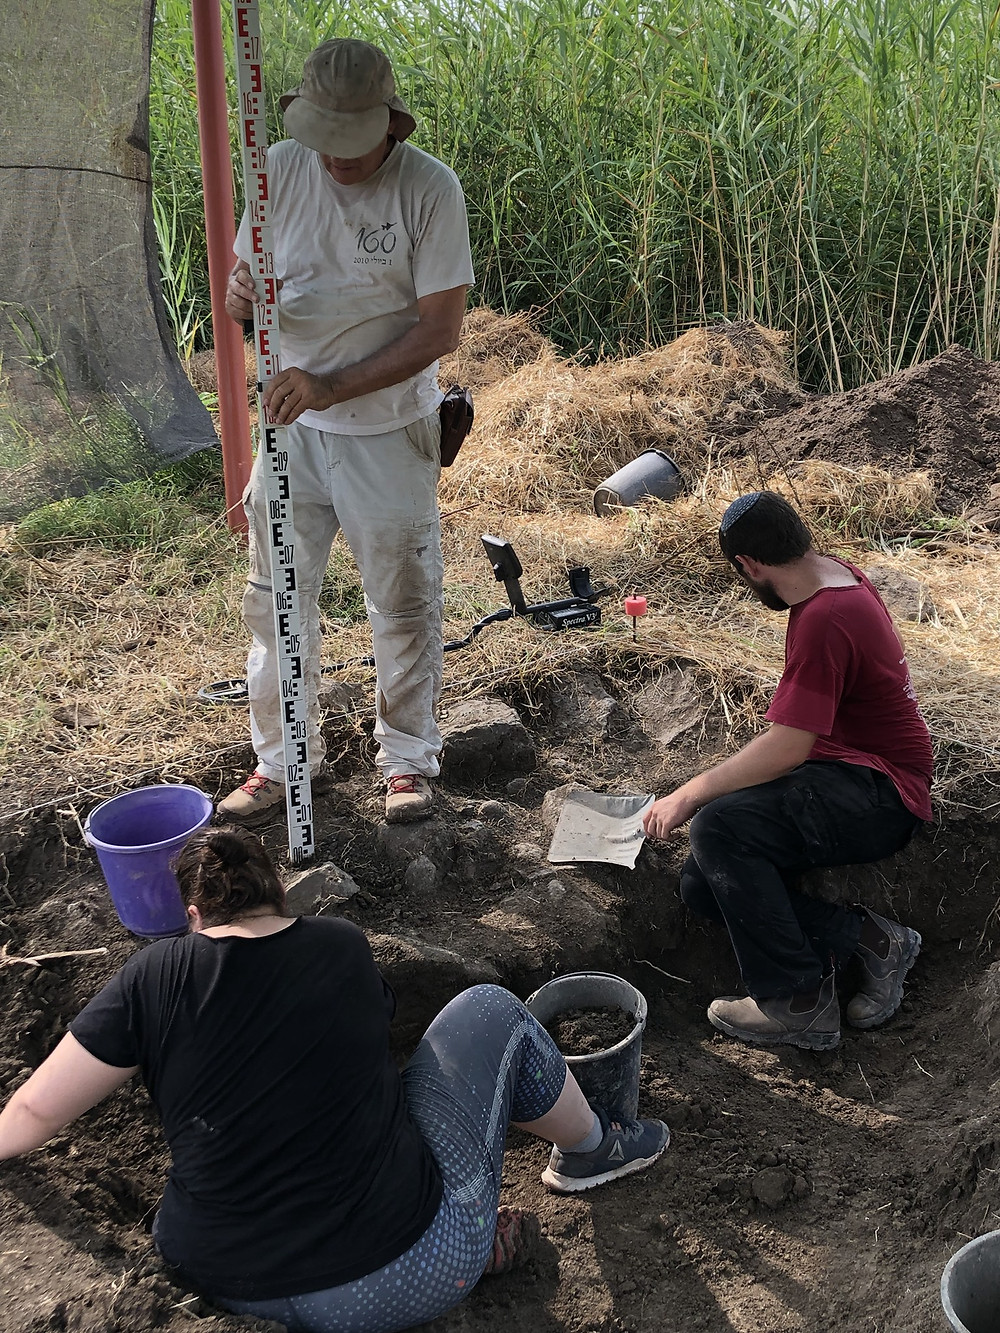 Motti Aviam measures the elevation of the walls of another first-century house in C2. The elevation corresponds to the elevation of houses excavated in C1 in 2019. Together they indicate a significant settlement in the early Roman period.